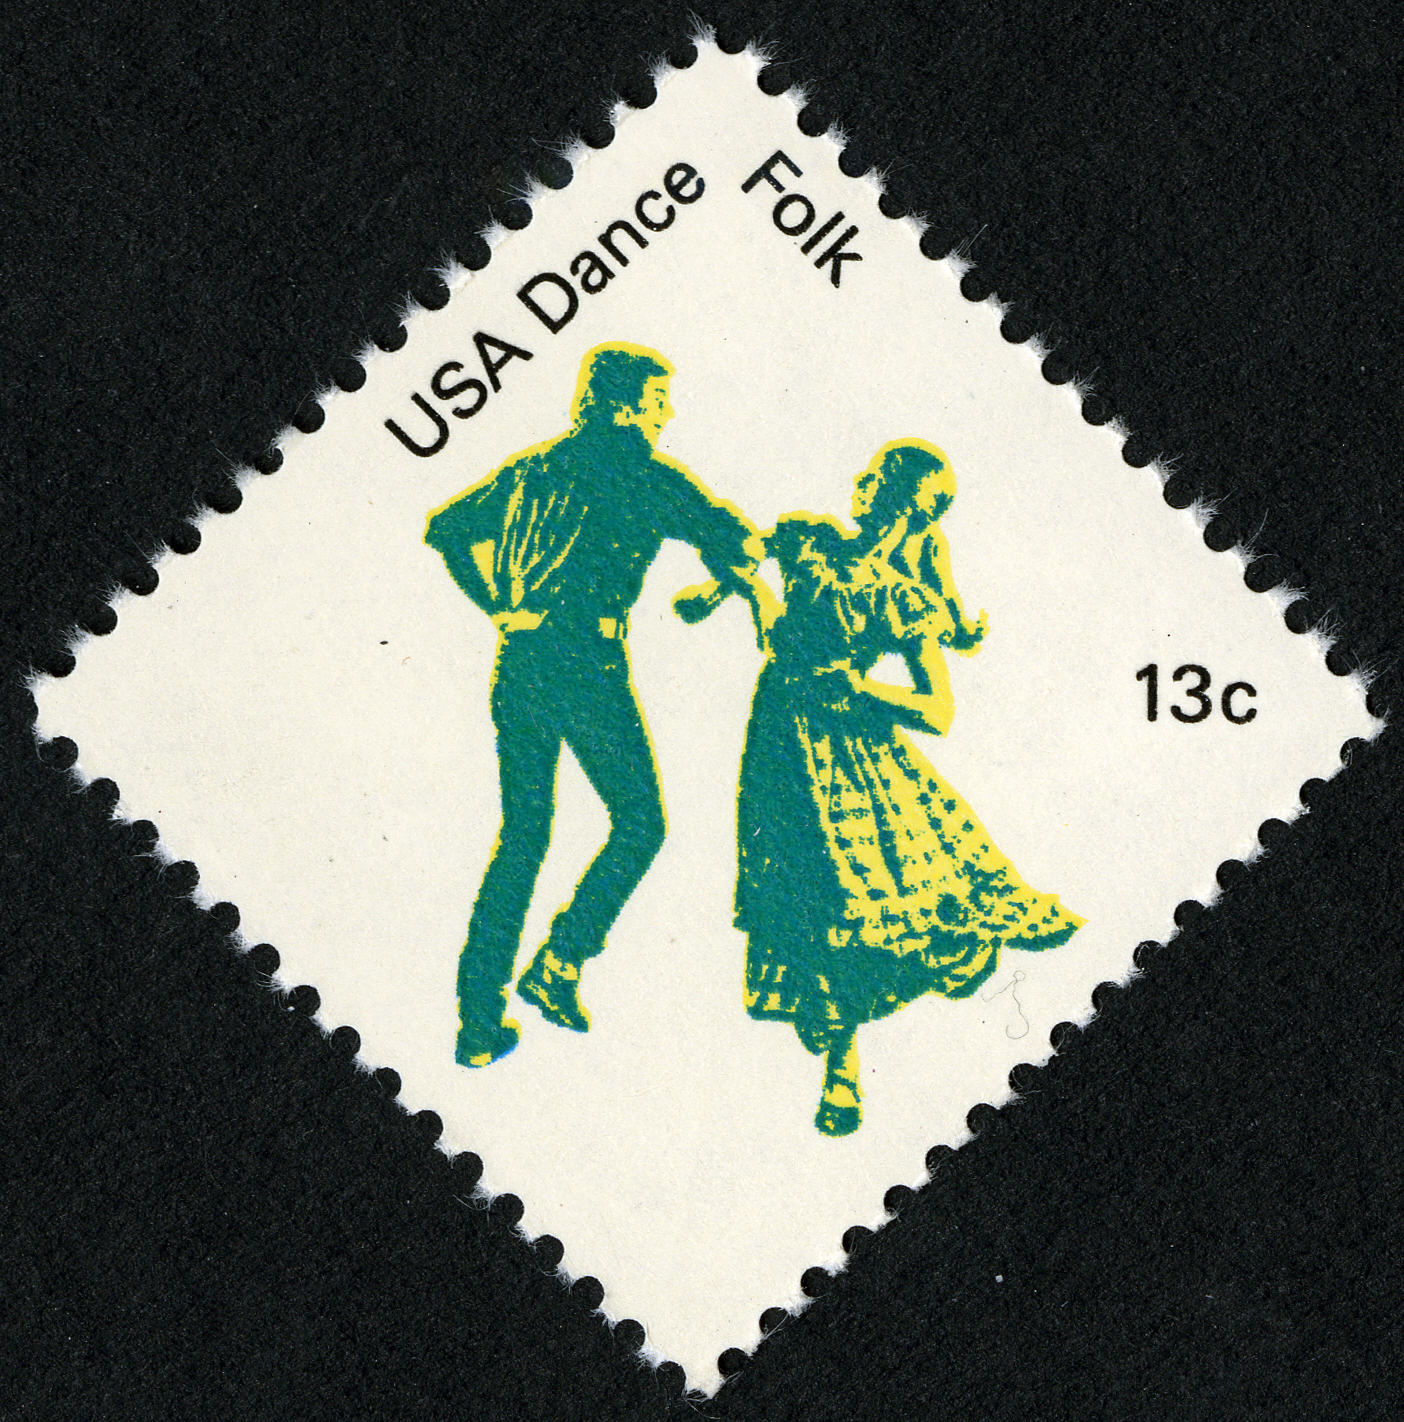 Postage stamp with image of male and female interlinking arms, spinning in dance.